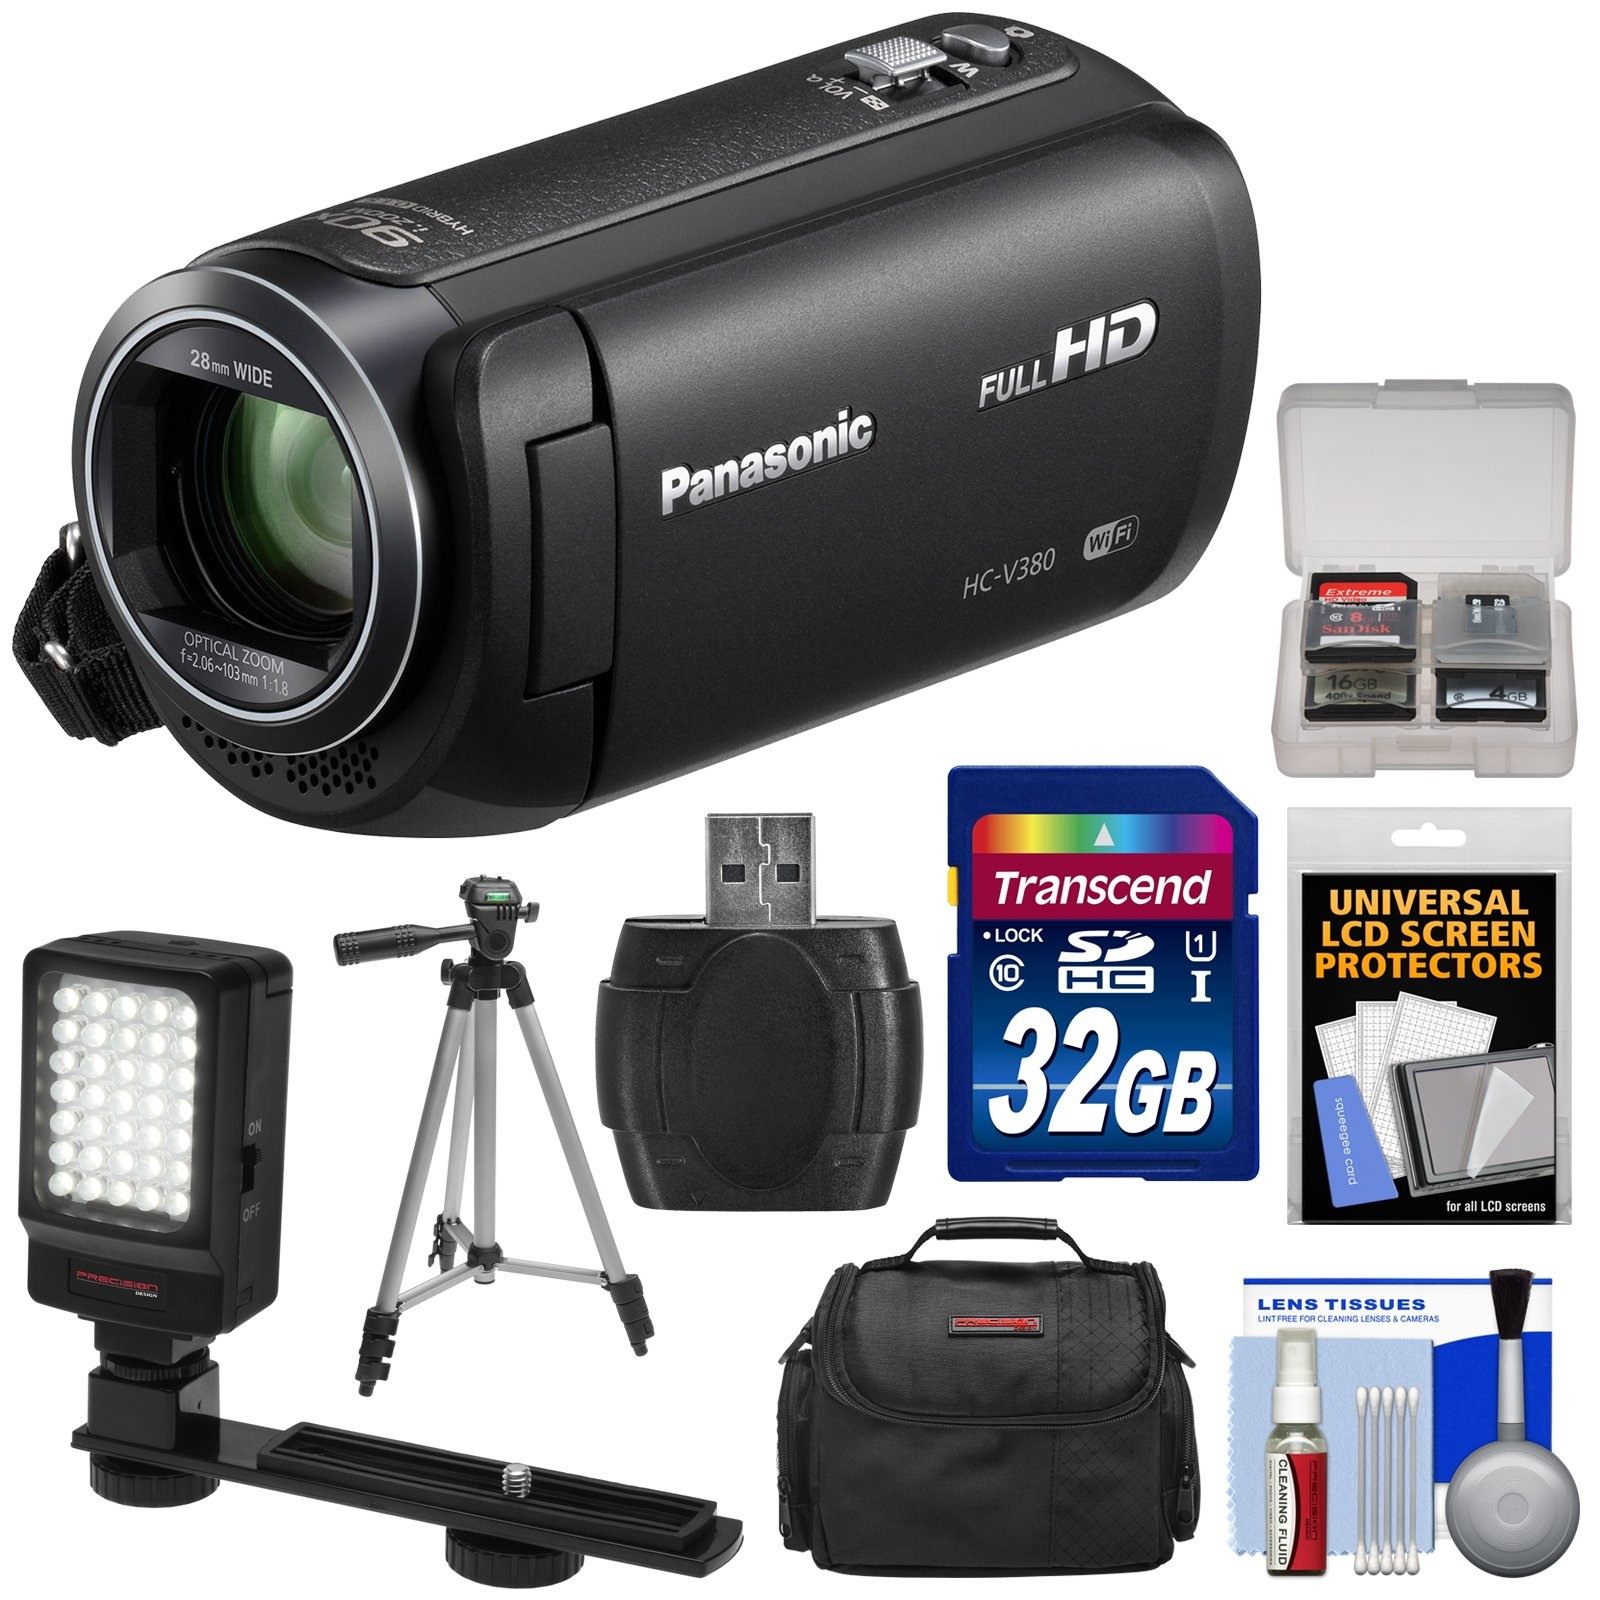 Panasonic HC-V380 Wi-Fi HD Video Camera Camcorder with 32GB Card + Case + Tripod + LED Light + Reader + Kit by Panasonic